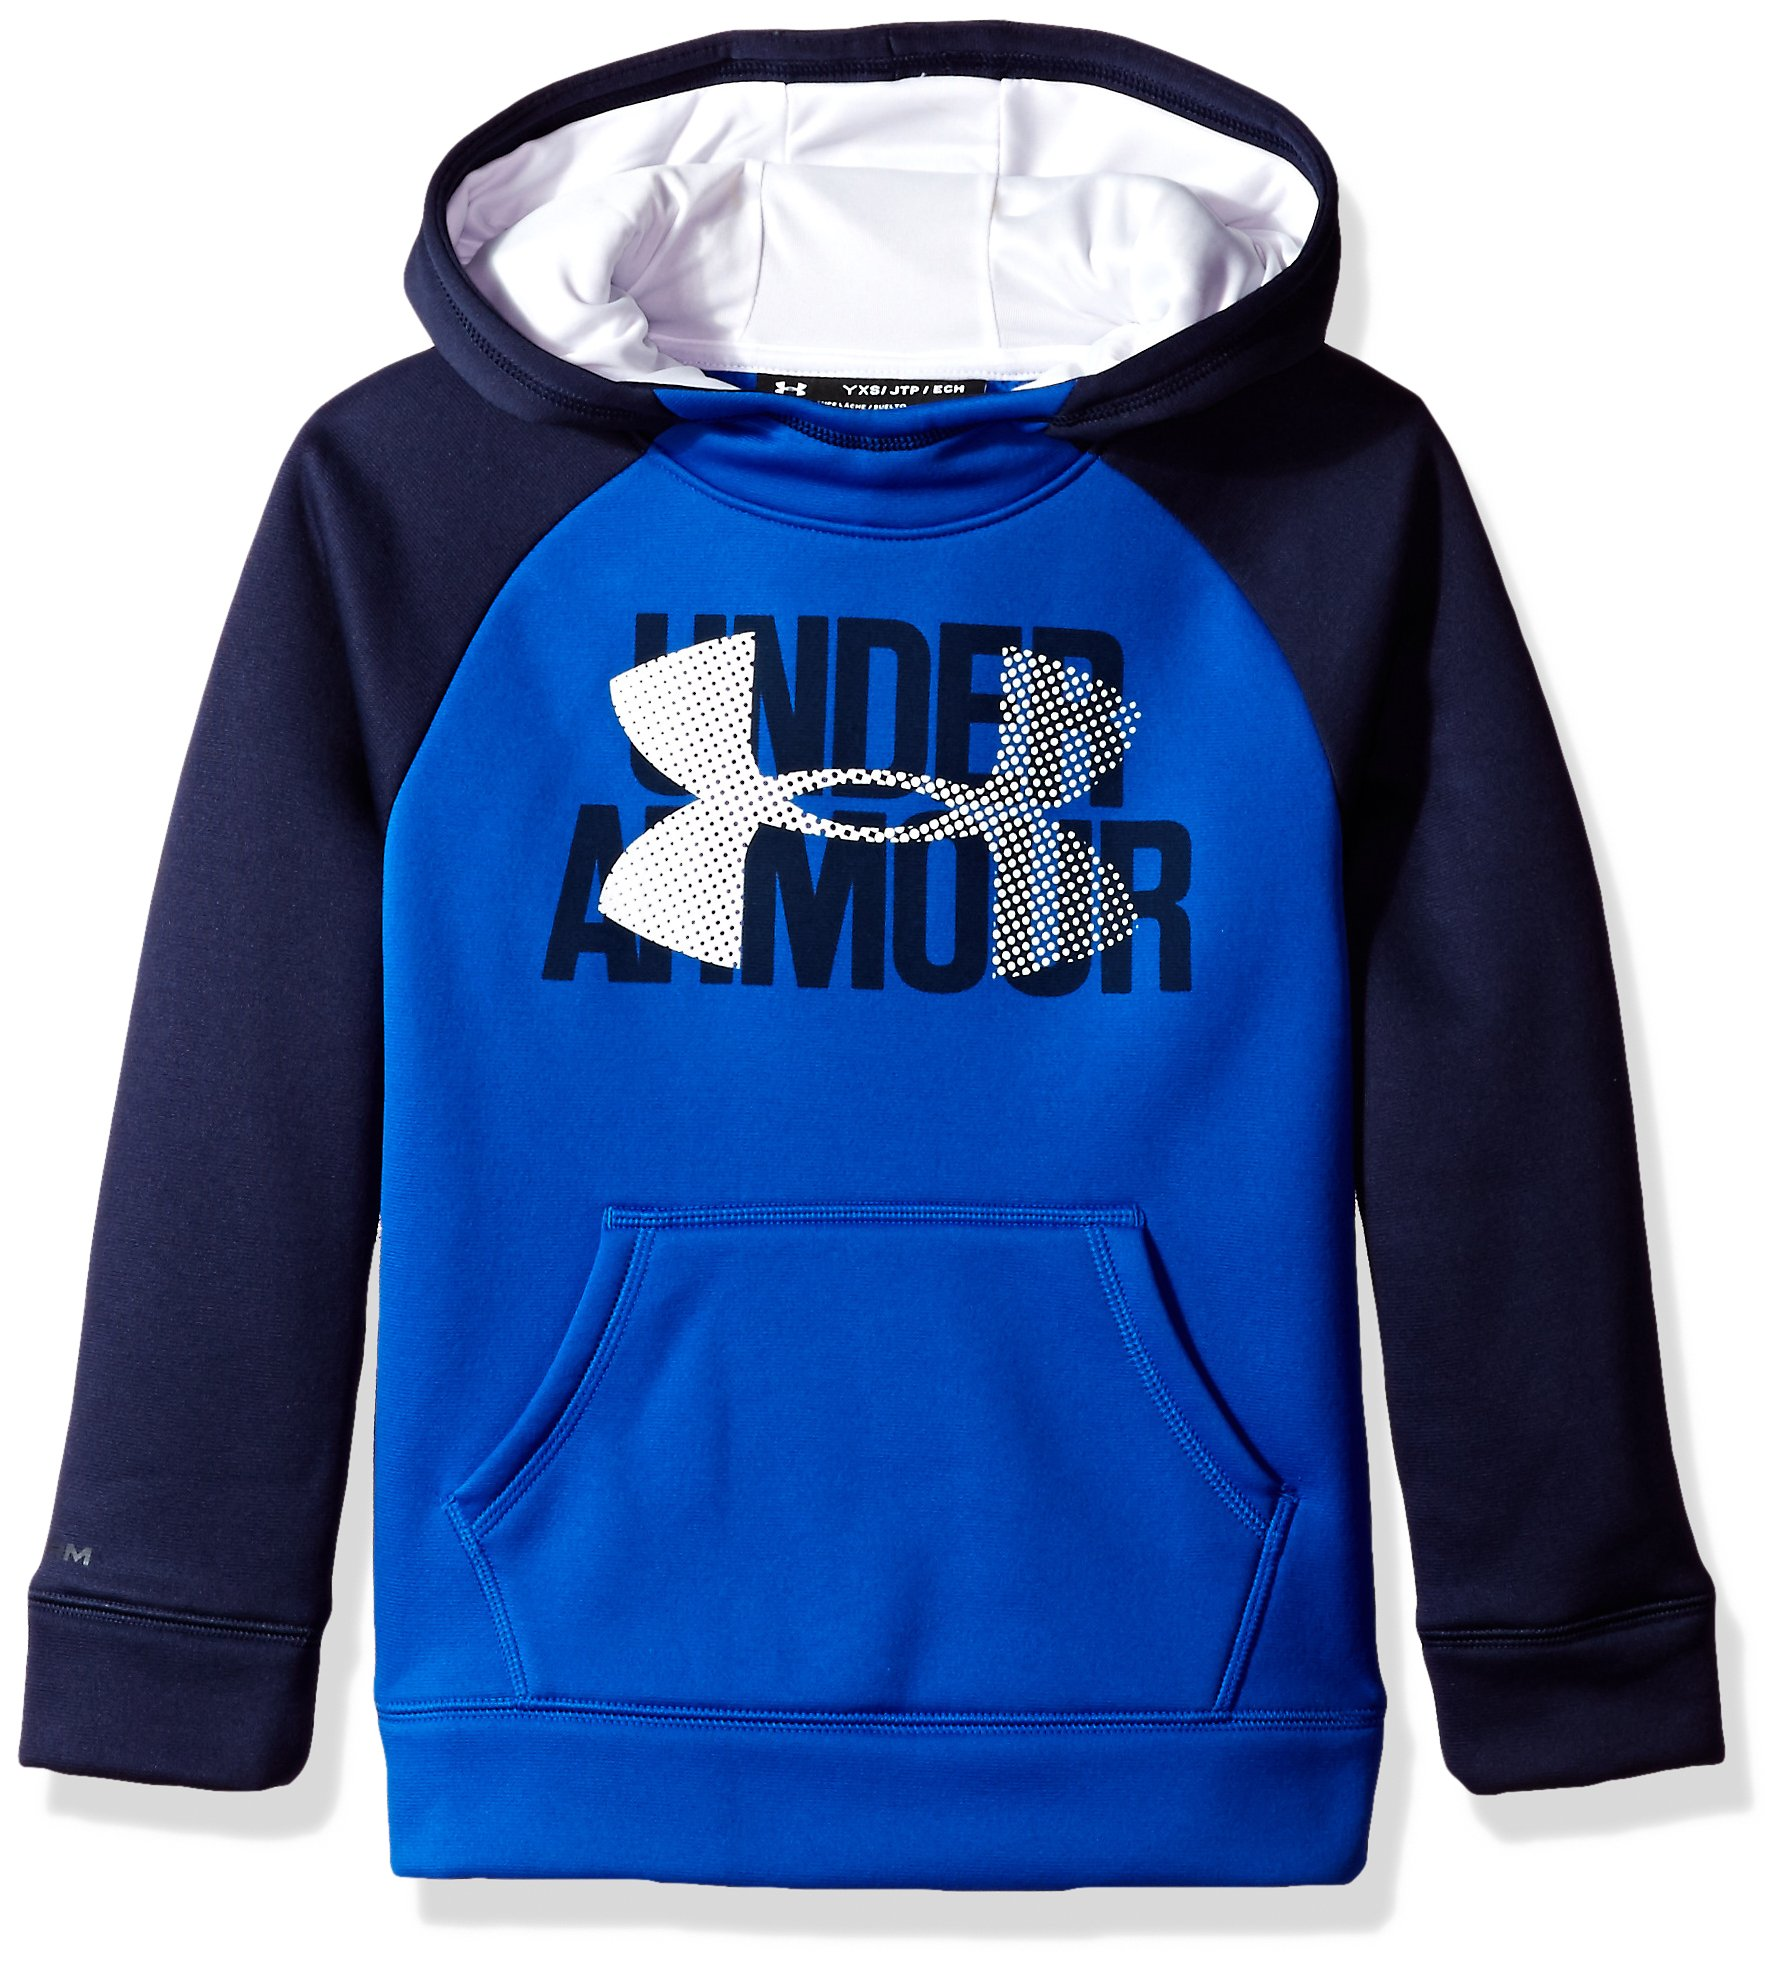 Under Armour Girls' Armour Fleece Big Logo Hoodie, Lapis Blue /White, Youth X-Small by Under Armour